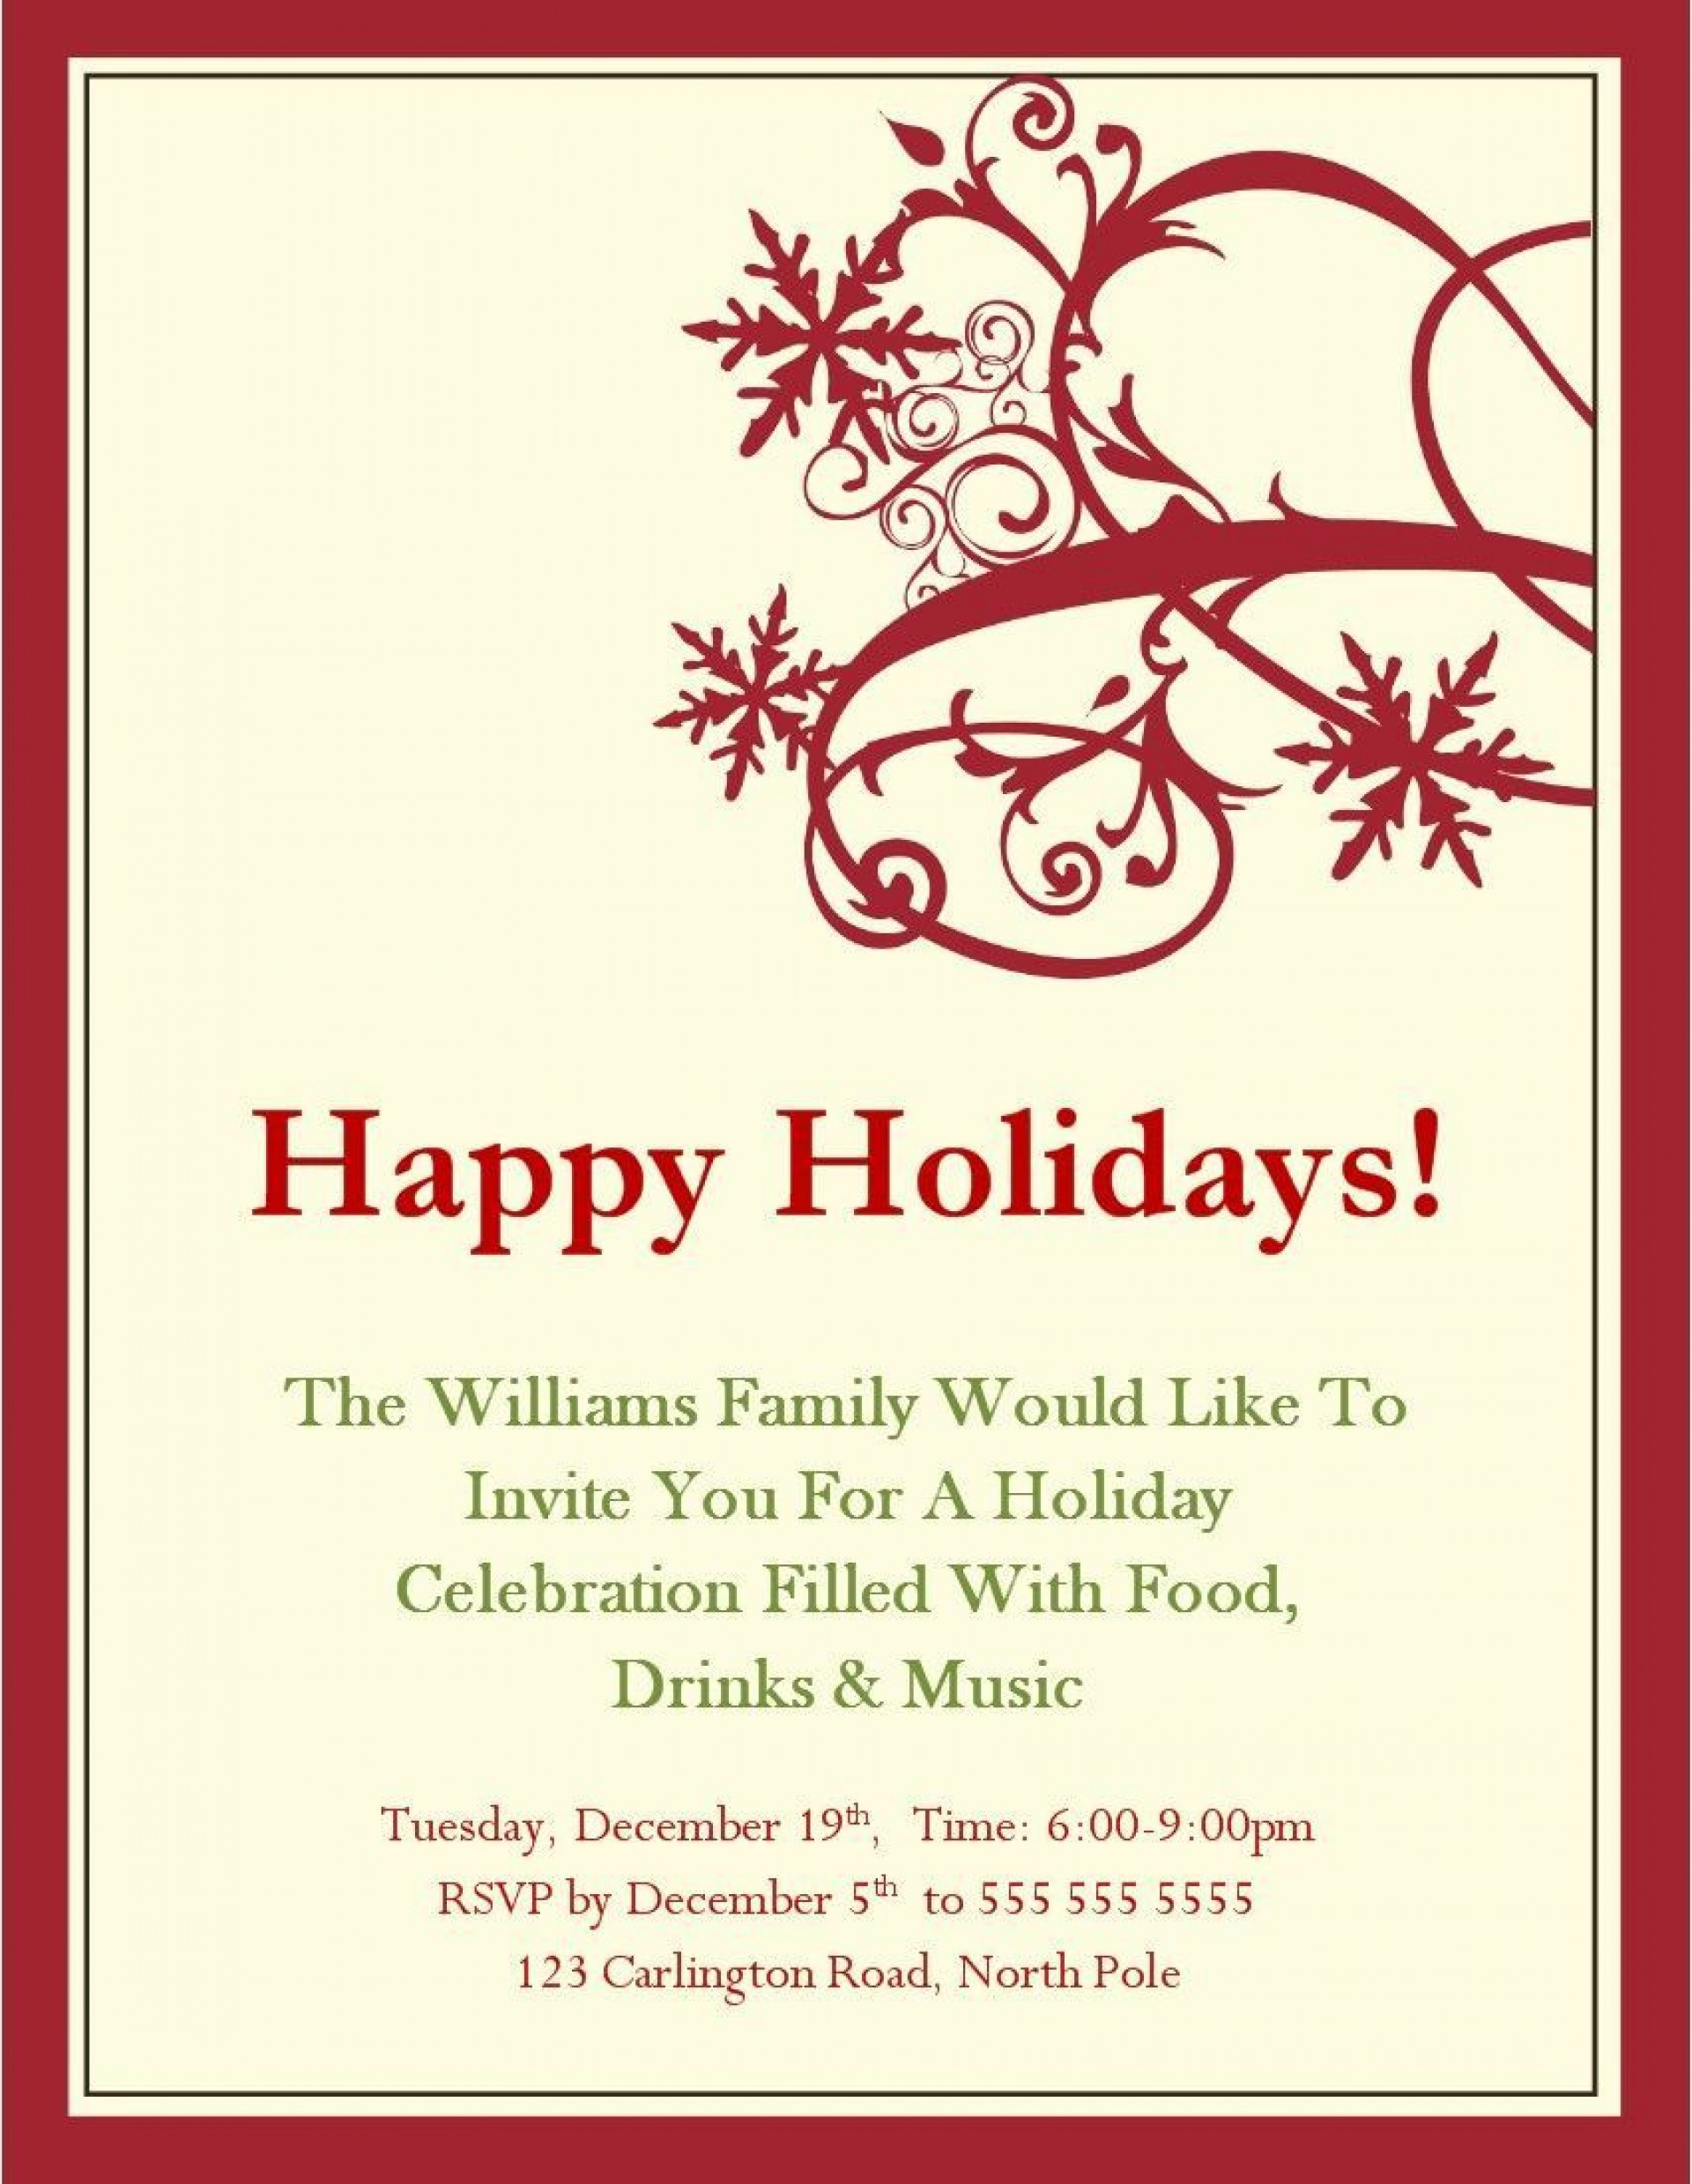 004 Exceptional Xma Party Invite Template Free Sample  Holiday Invitation Word Printable Office Christma Download1920